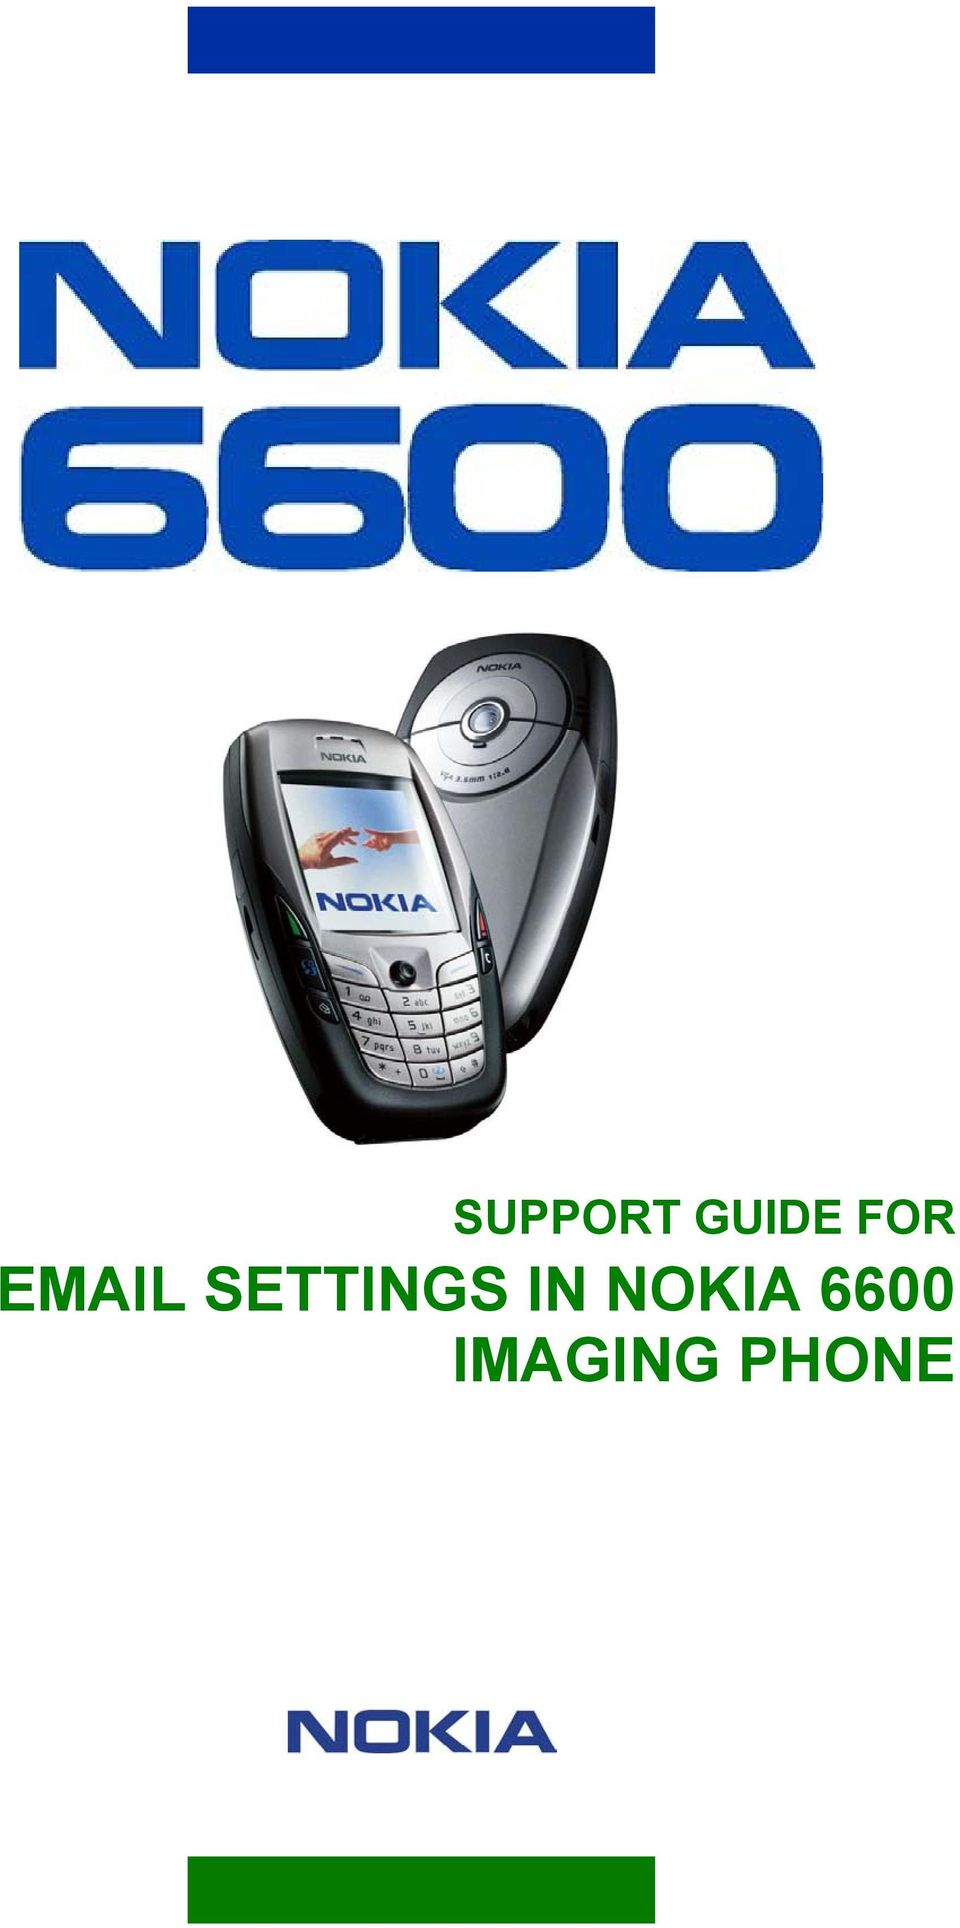 Support Guide For Settings In Nokia 6600 Imaging Phone Pdf 9300 Service Manual Introduction Account On With Pc Suite4 Legal Notice Copyright 2003 All Rights Reserved Reproduction Transfer